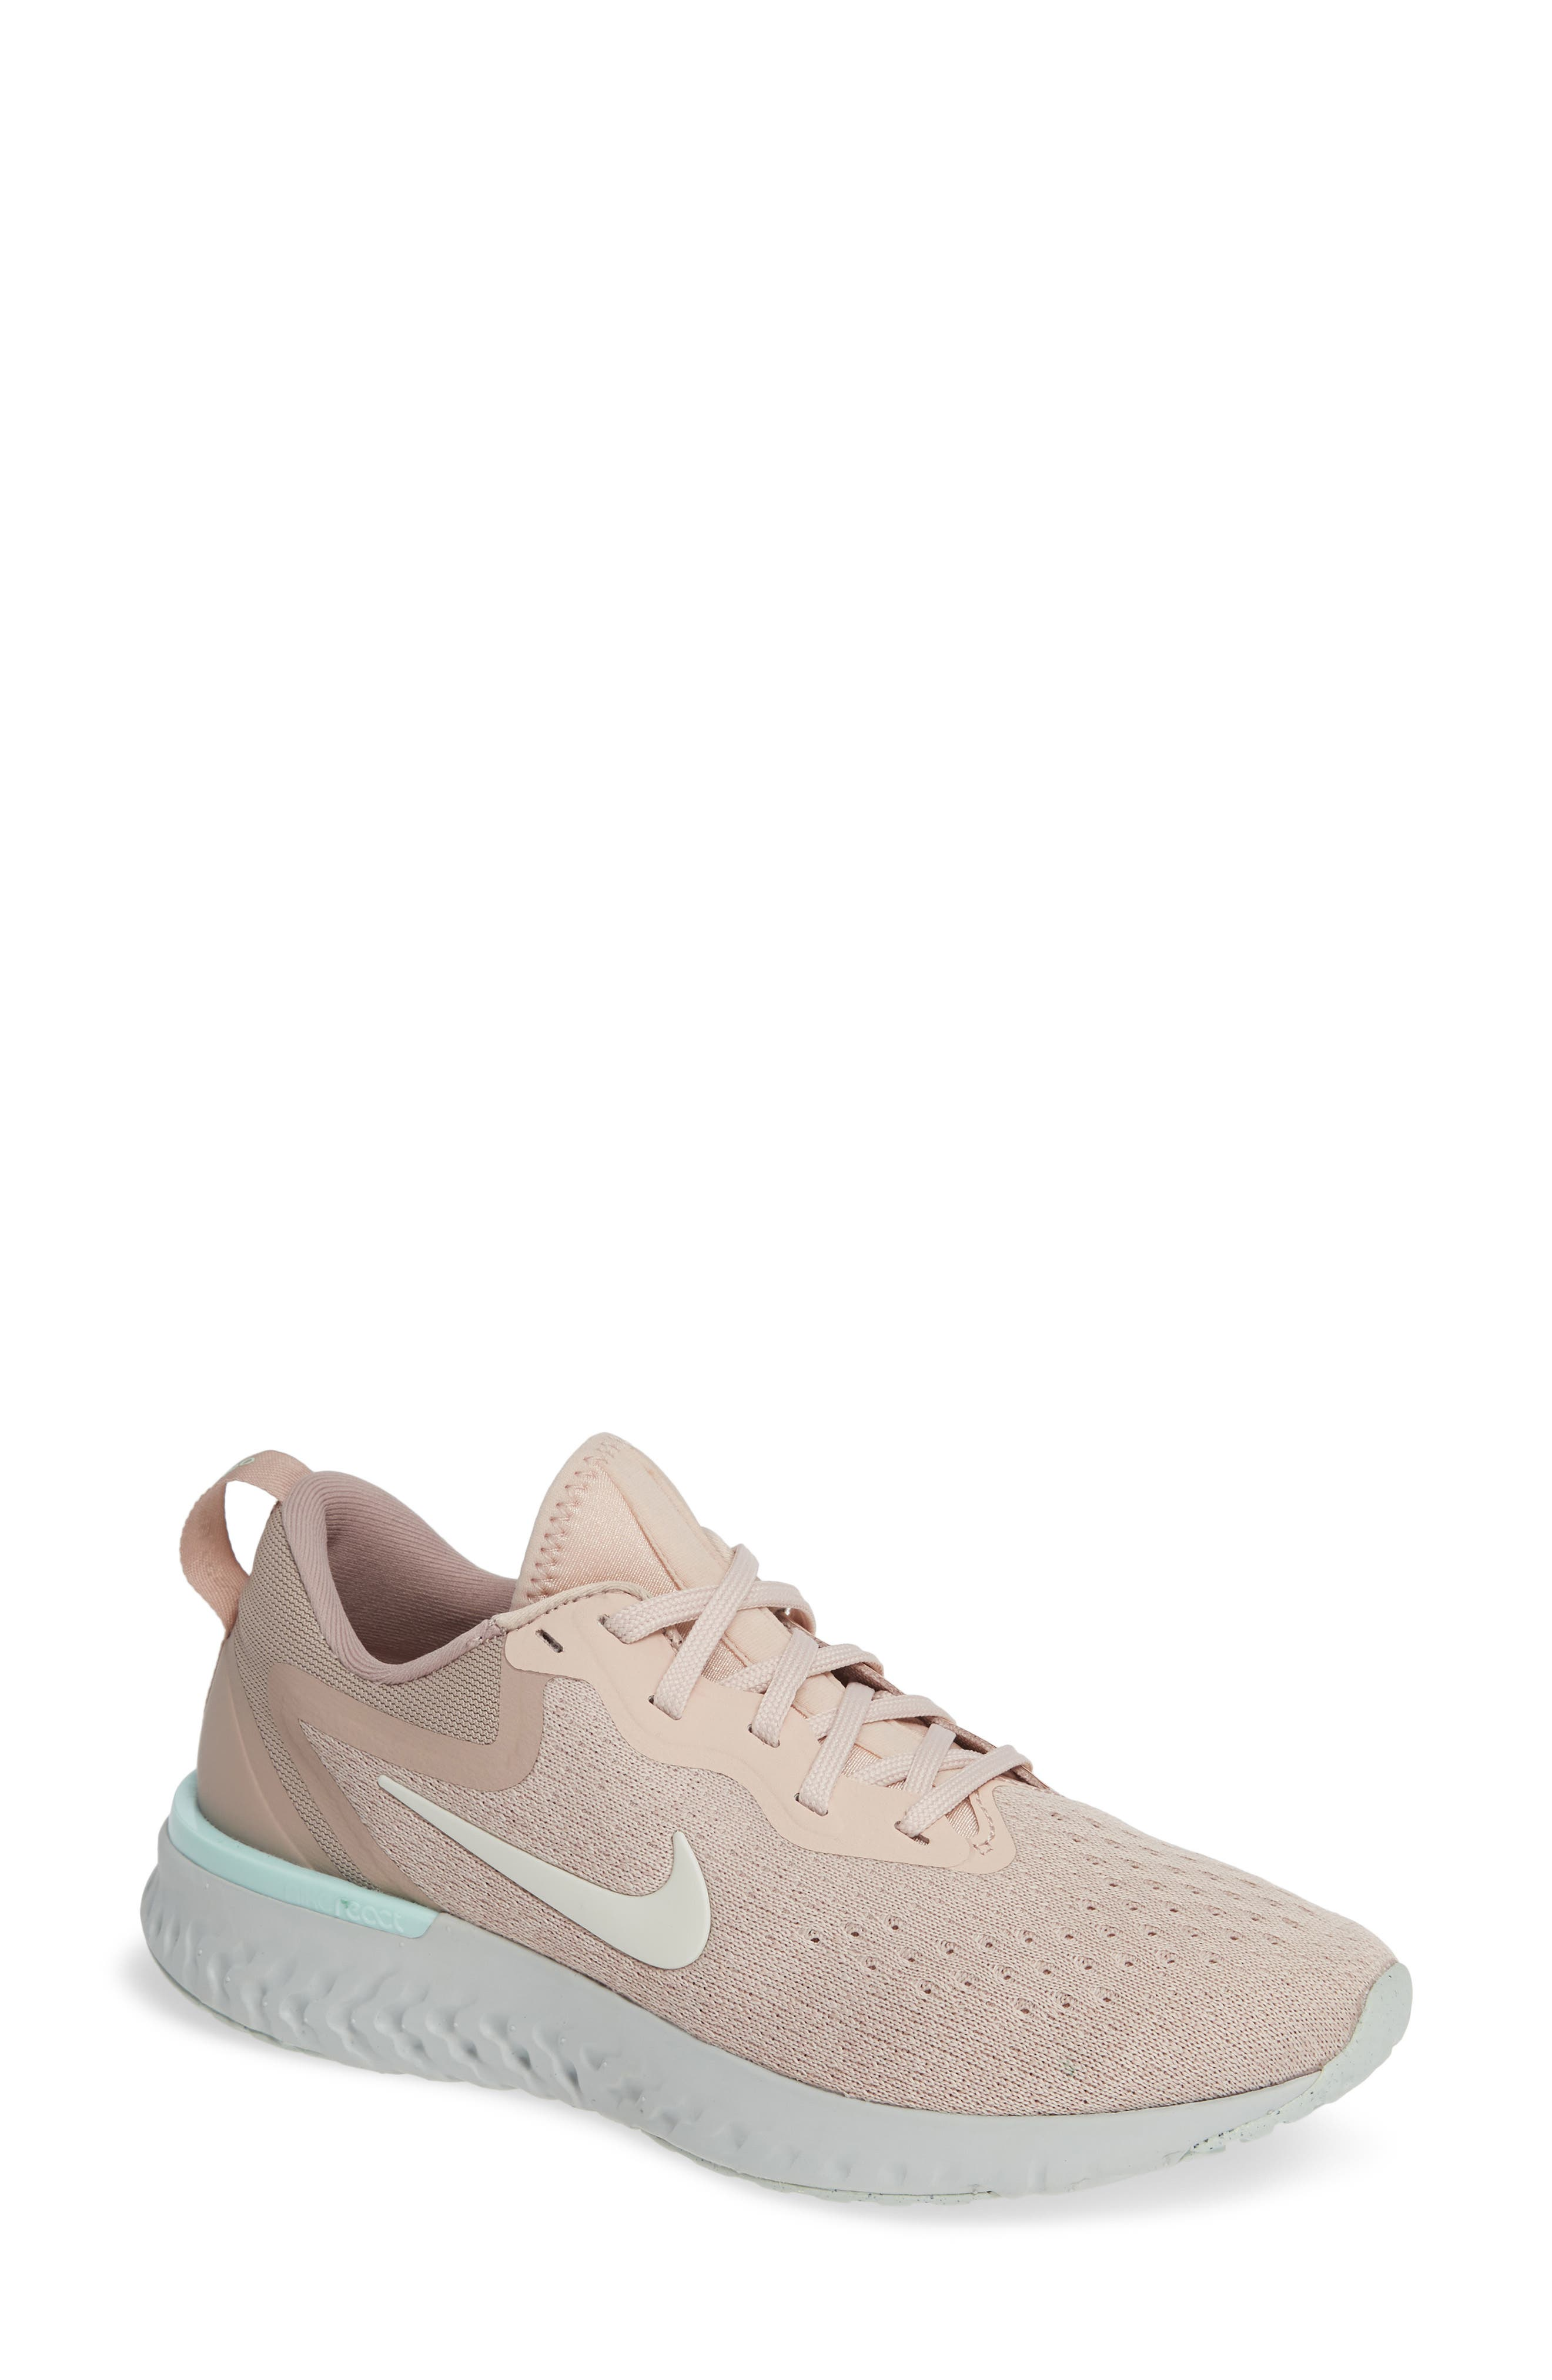 Odyssey React Running Shoe,                             Main thumbnail 1, color,                             BEIGE/ PHANTOM-DIFFUSED TAUPE